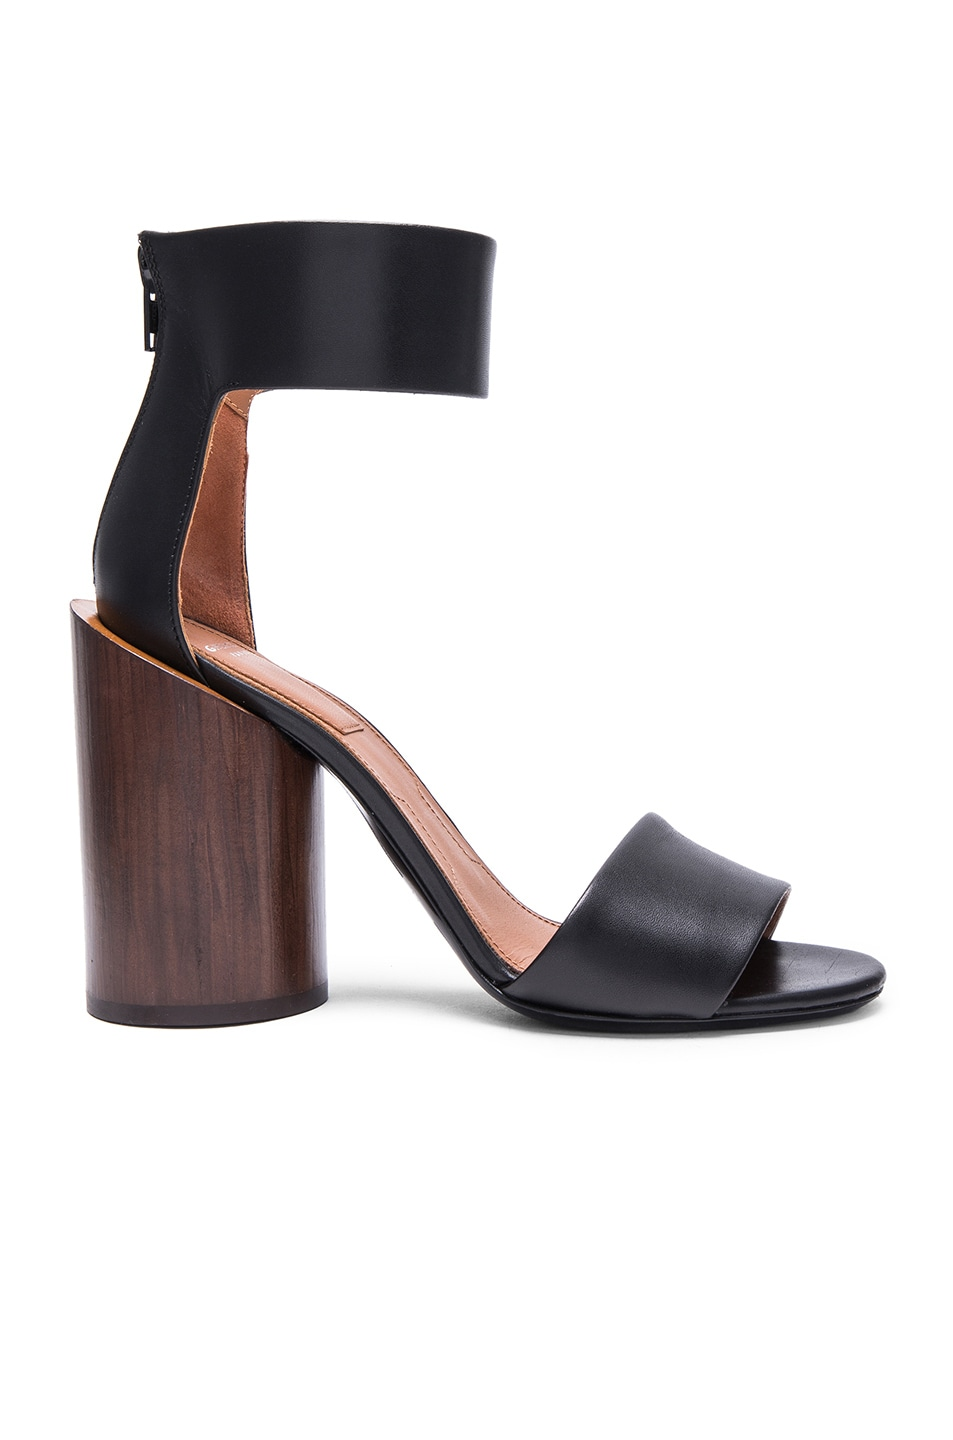 Image 1 of Givenchy Polly Shiny Leather Sandals with Wood Heel in Black